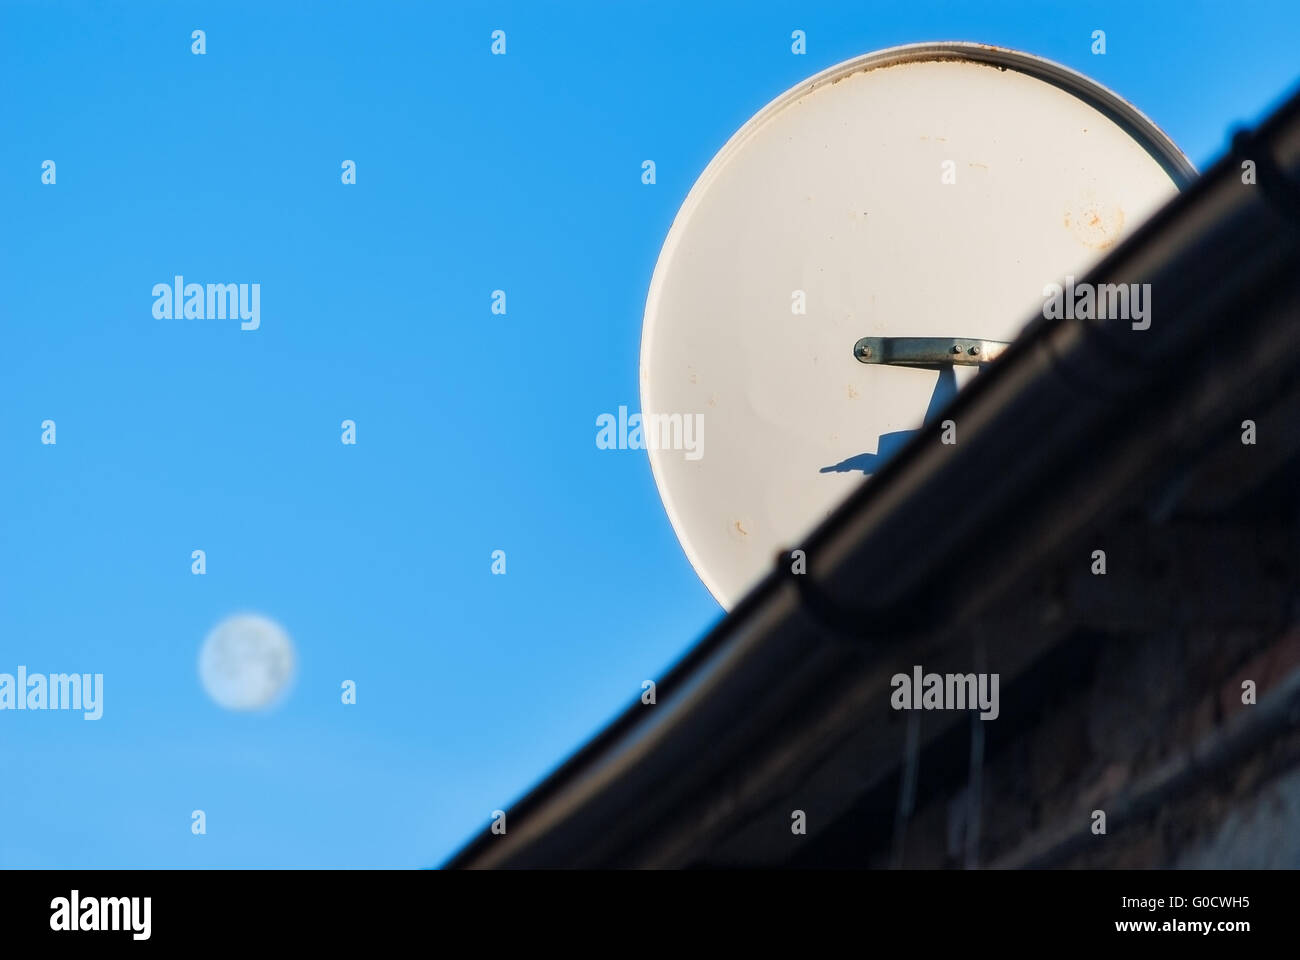 satellite dish on the roof on the background of the moon in the sky - Stock Image